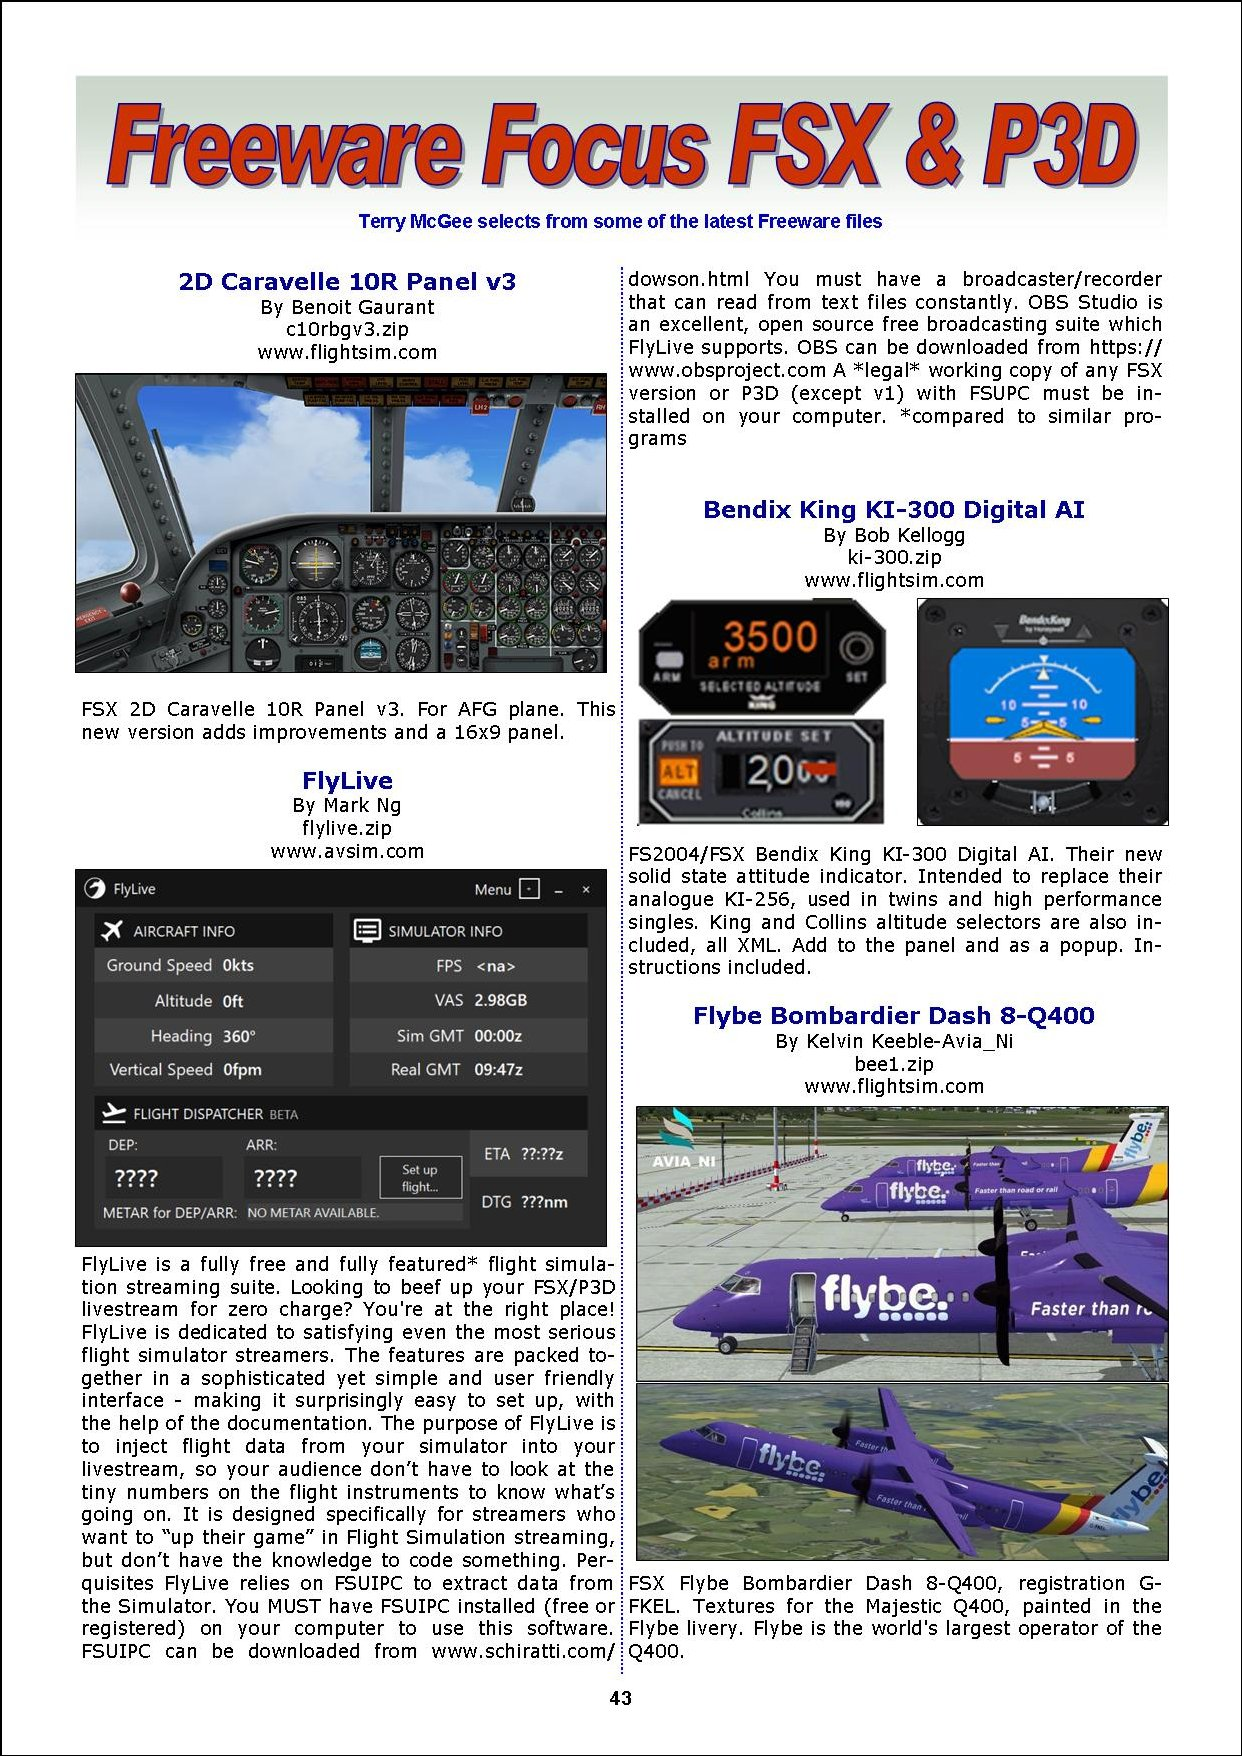 PC PILOTS IRELAND - PC FLIGHT VOL. 20 ISSUE 12 JUNE 2017 - FREE